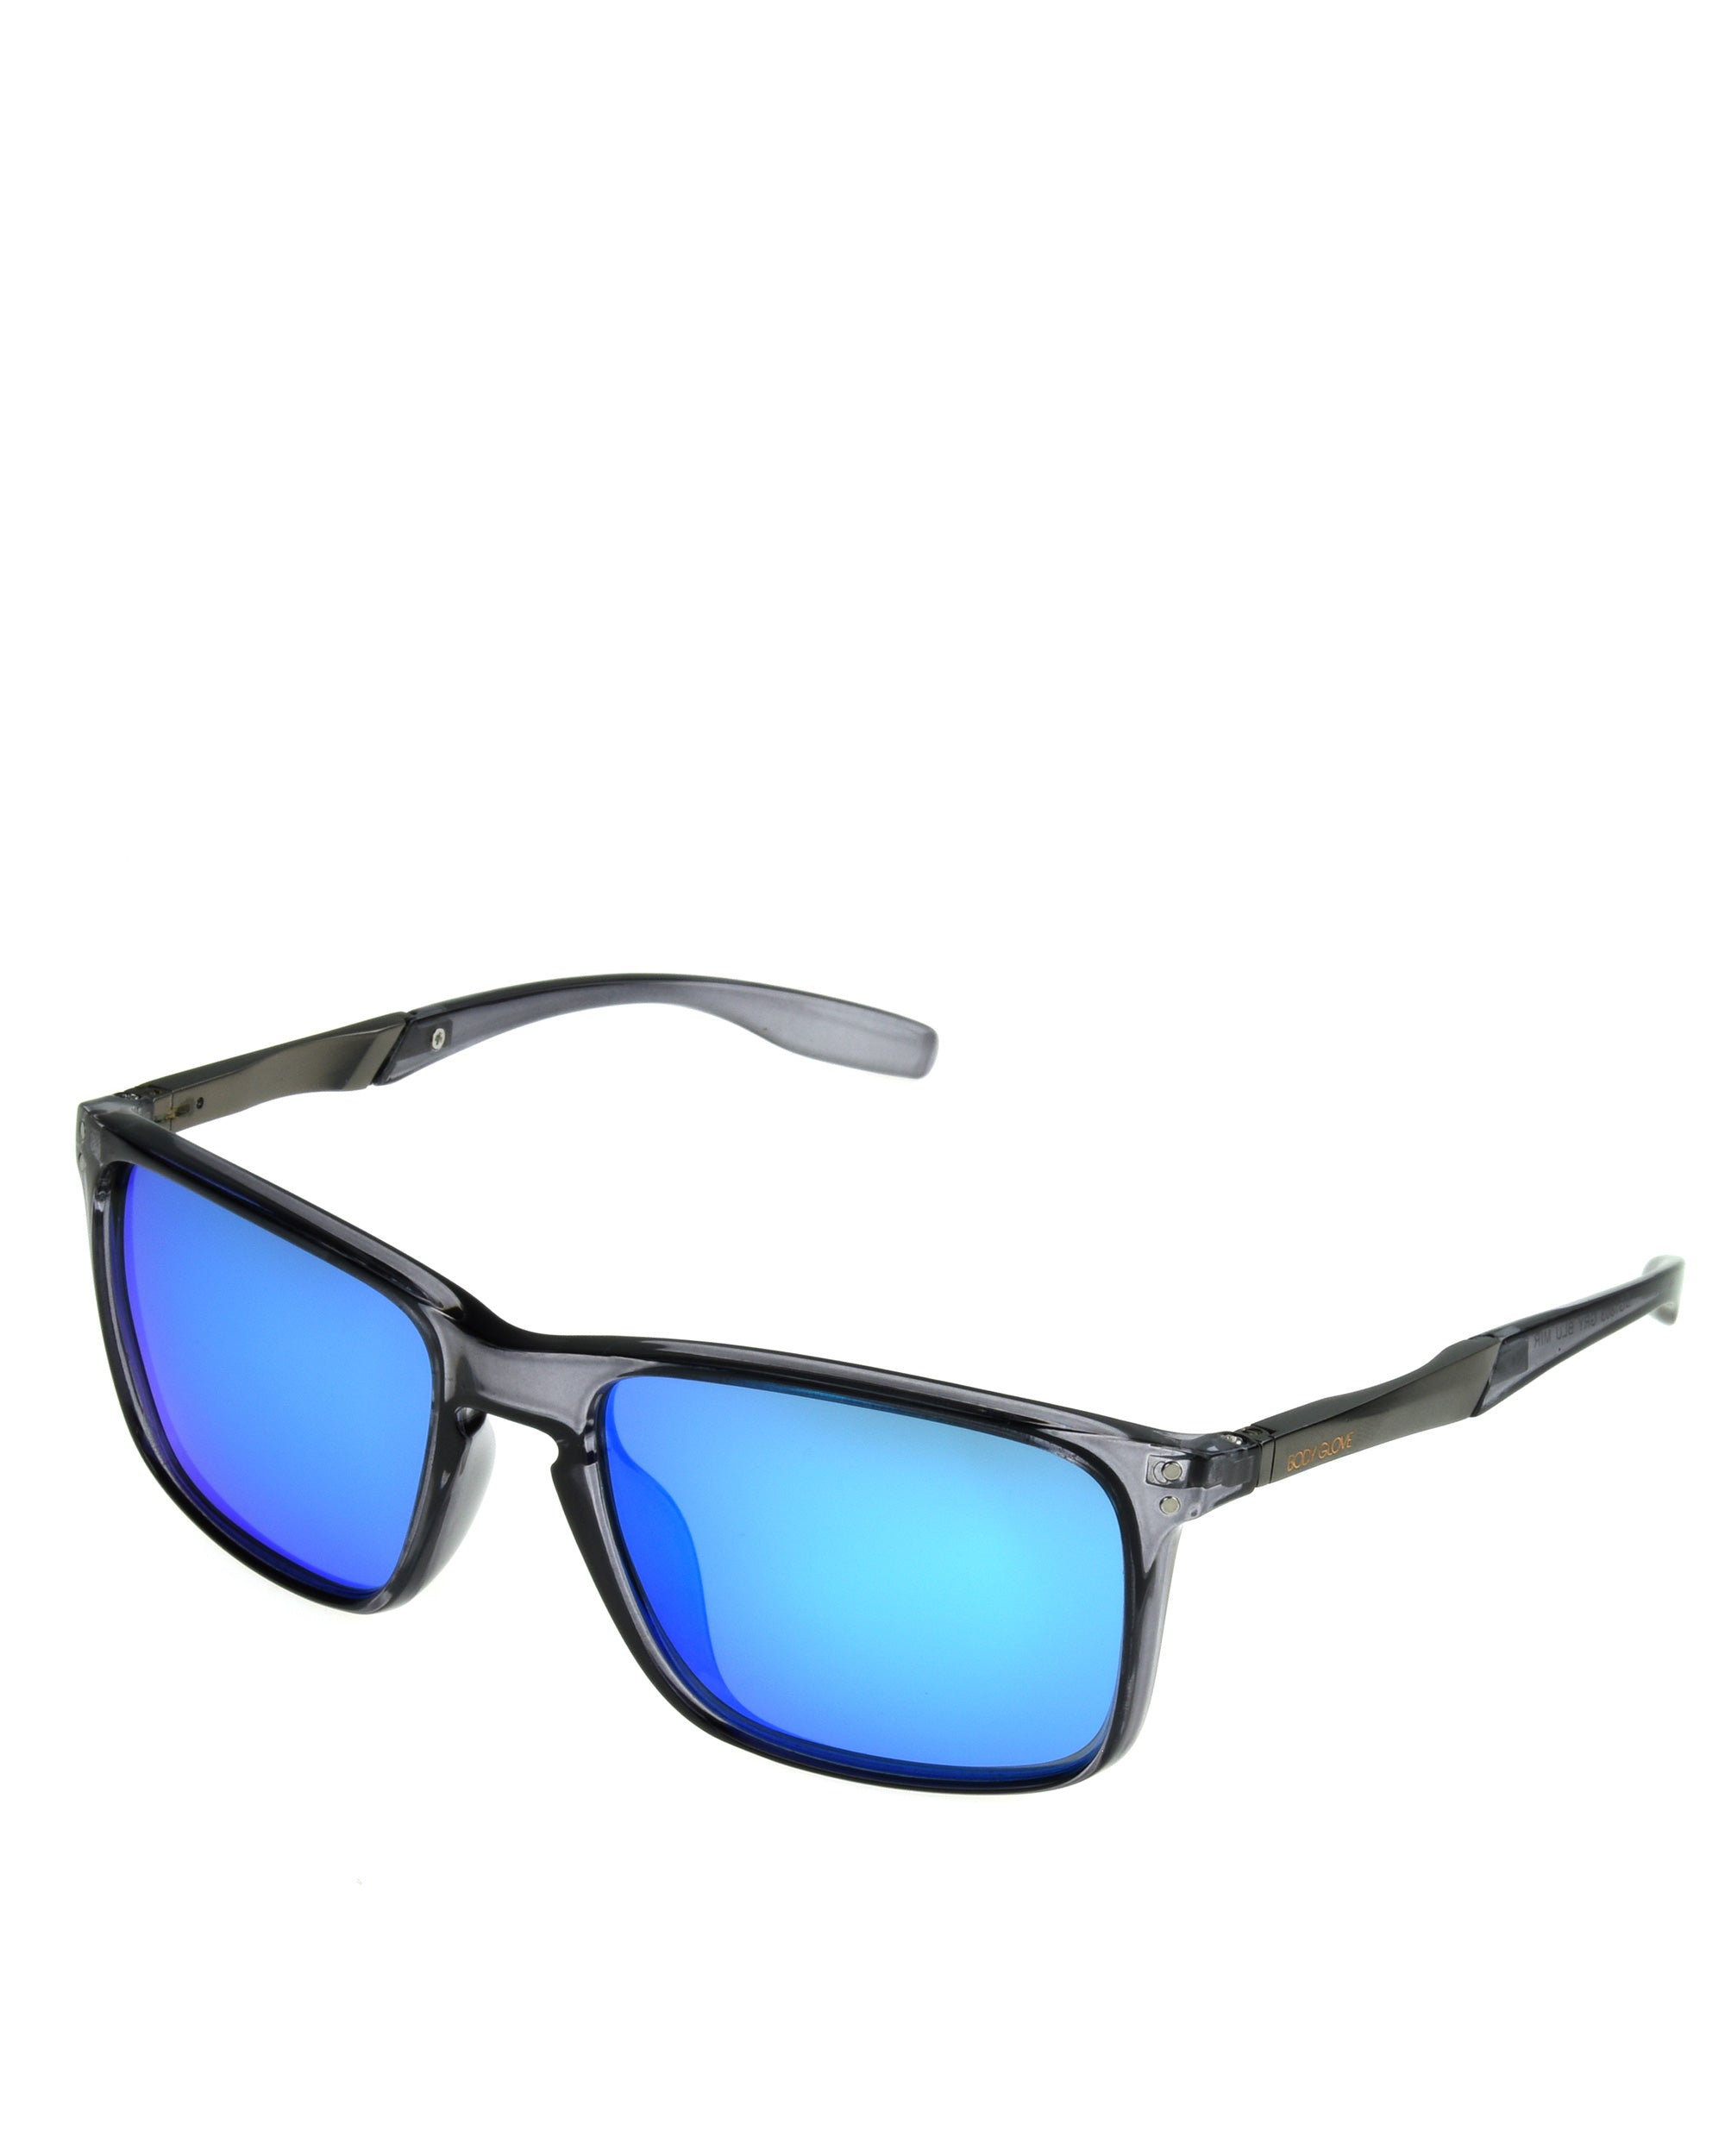 Men's BG1803 Polarized Sunglasses - Grey